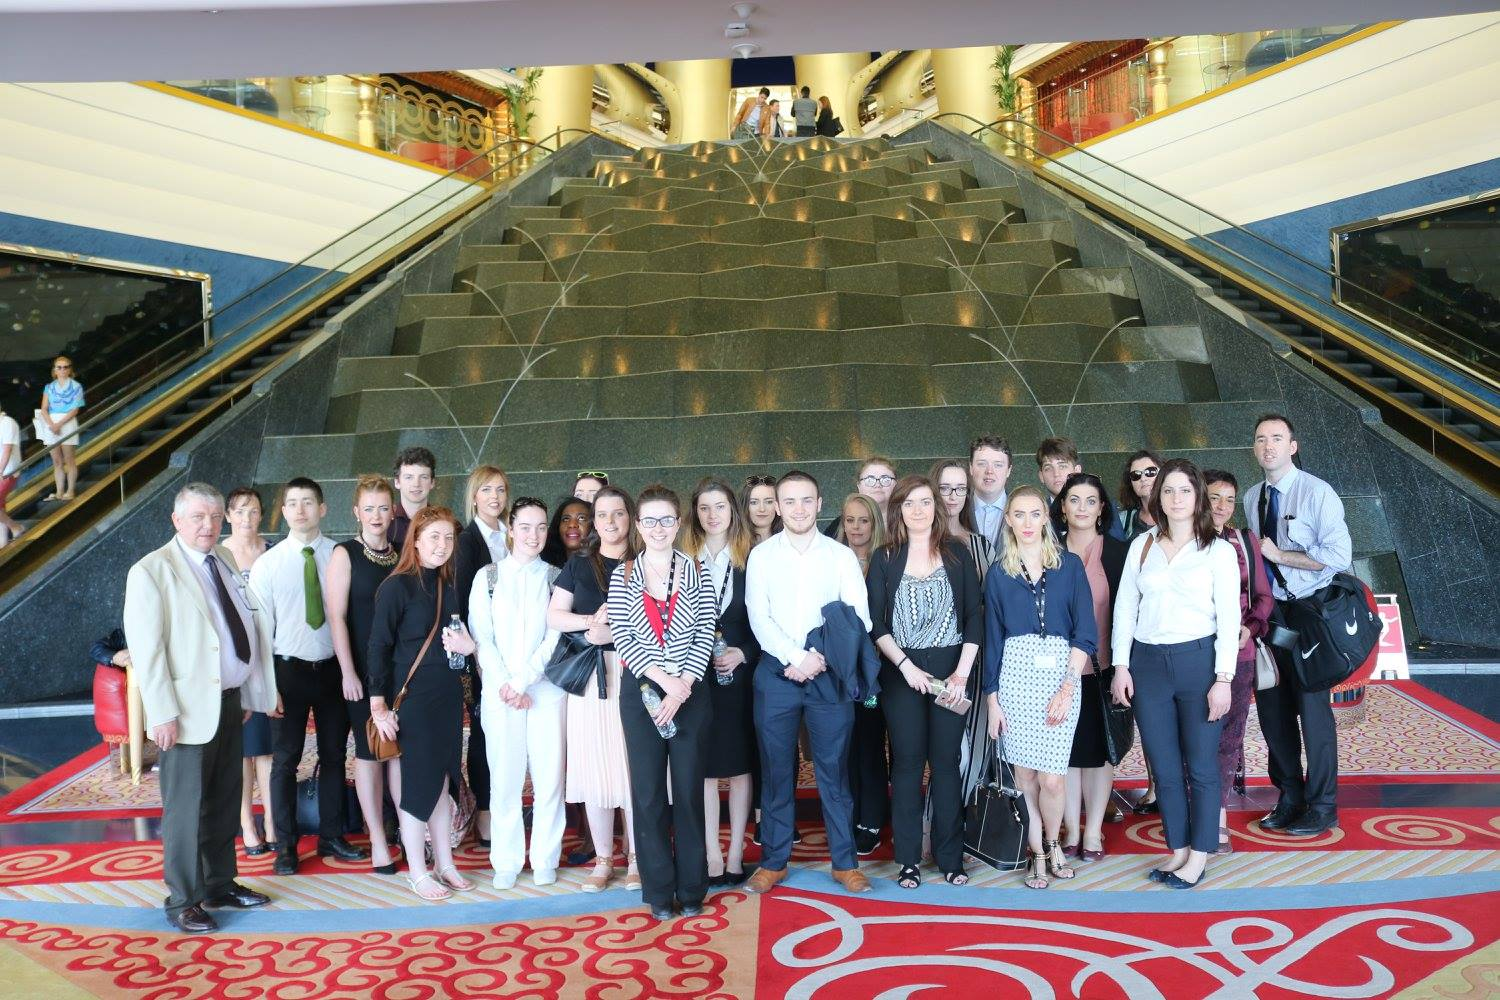 Hospitality students in the Burj al Arab, Dubai